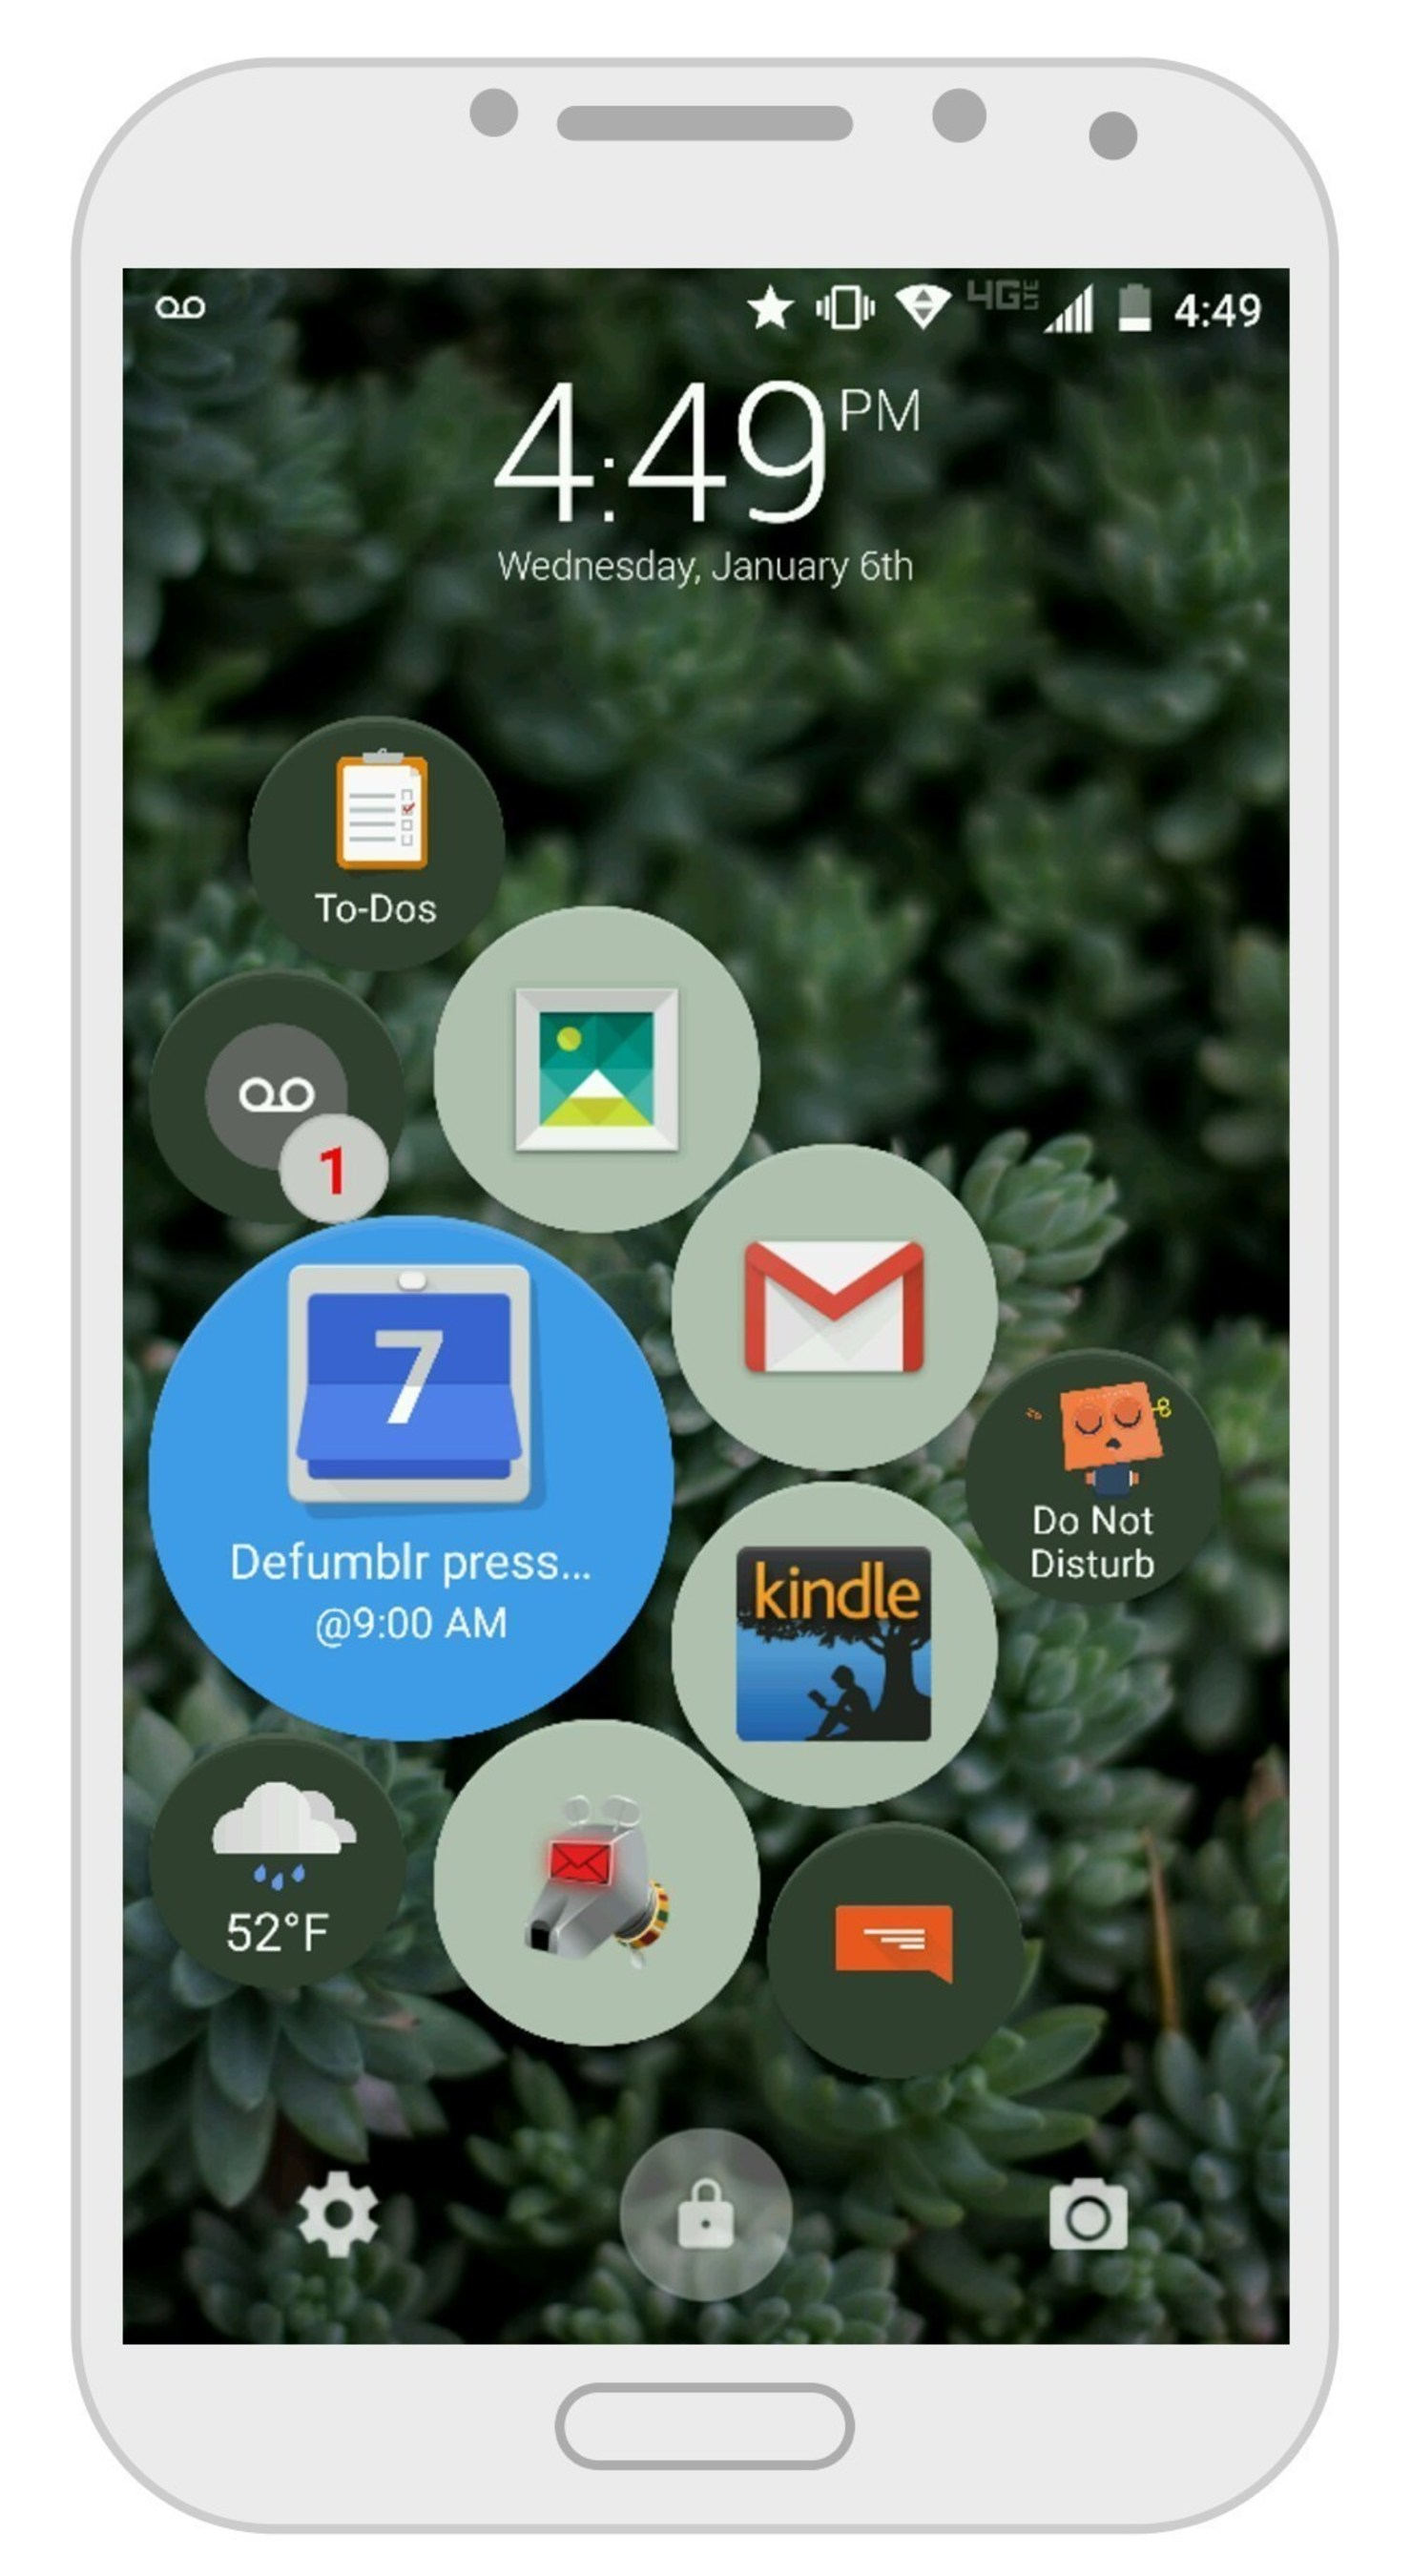 Delvv Reinvents the Android Lock Screen with Defumblr, Giving Users